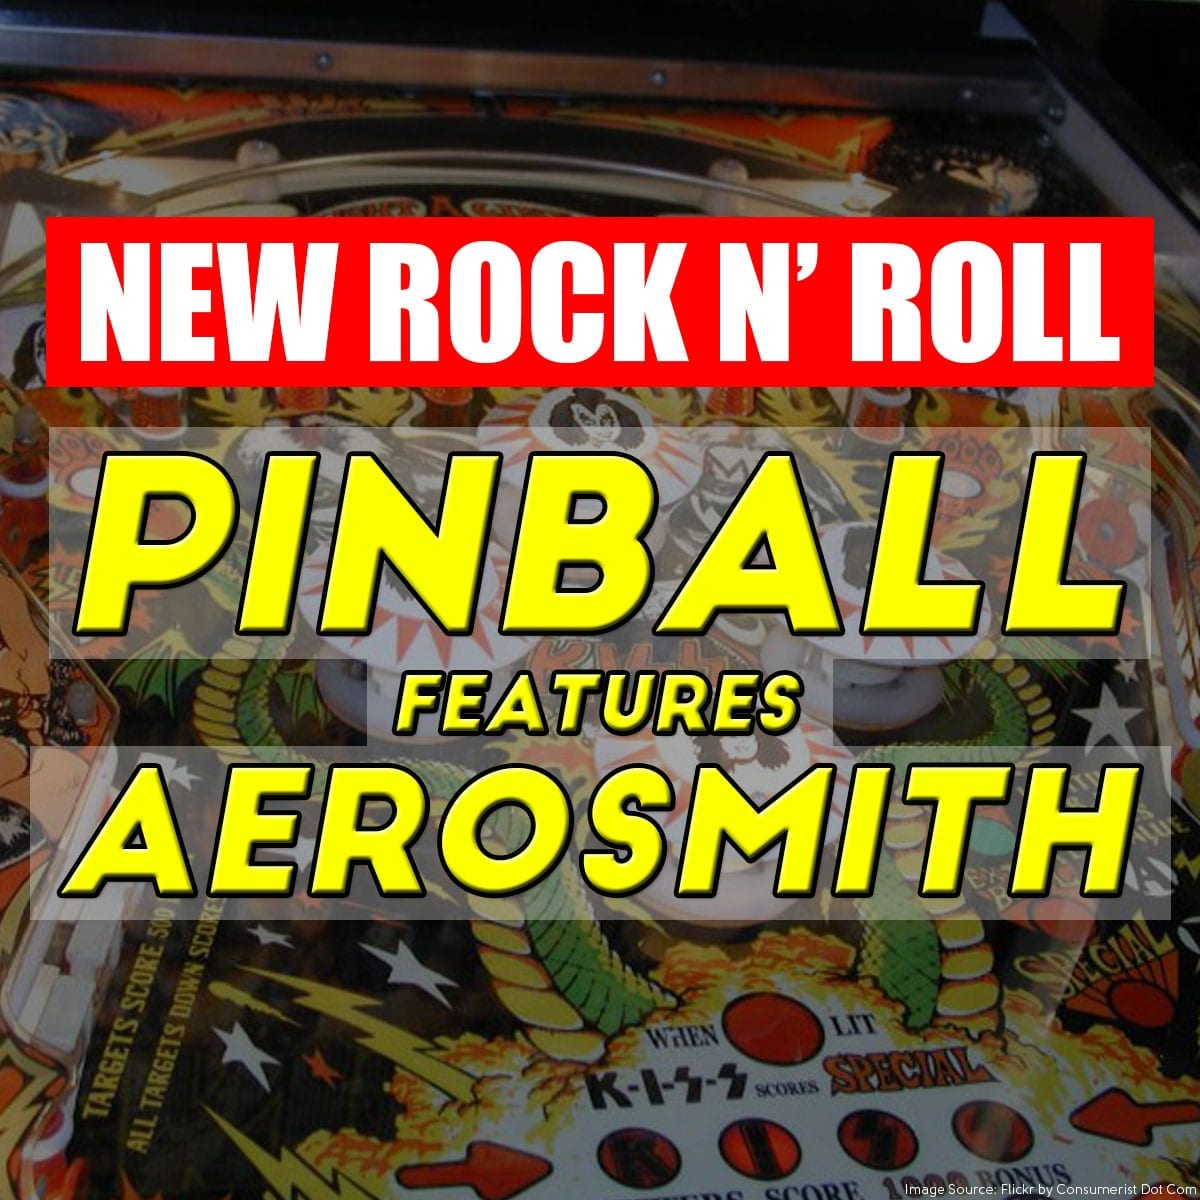 New Rock n' Roll Pinball features Aerosmith